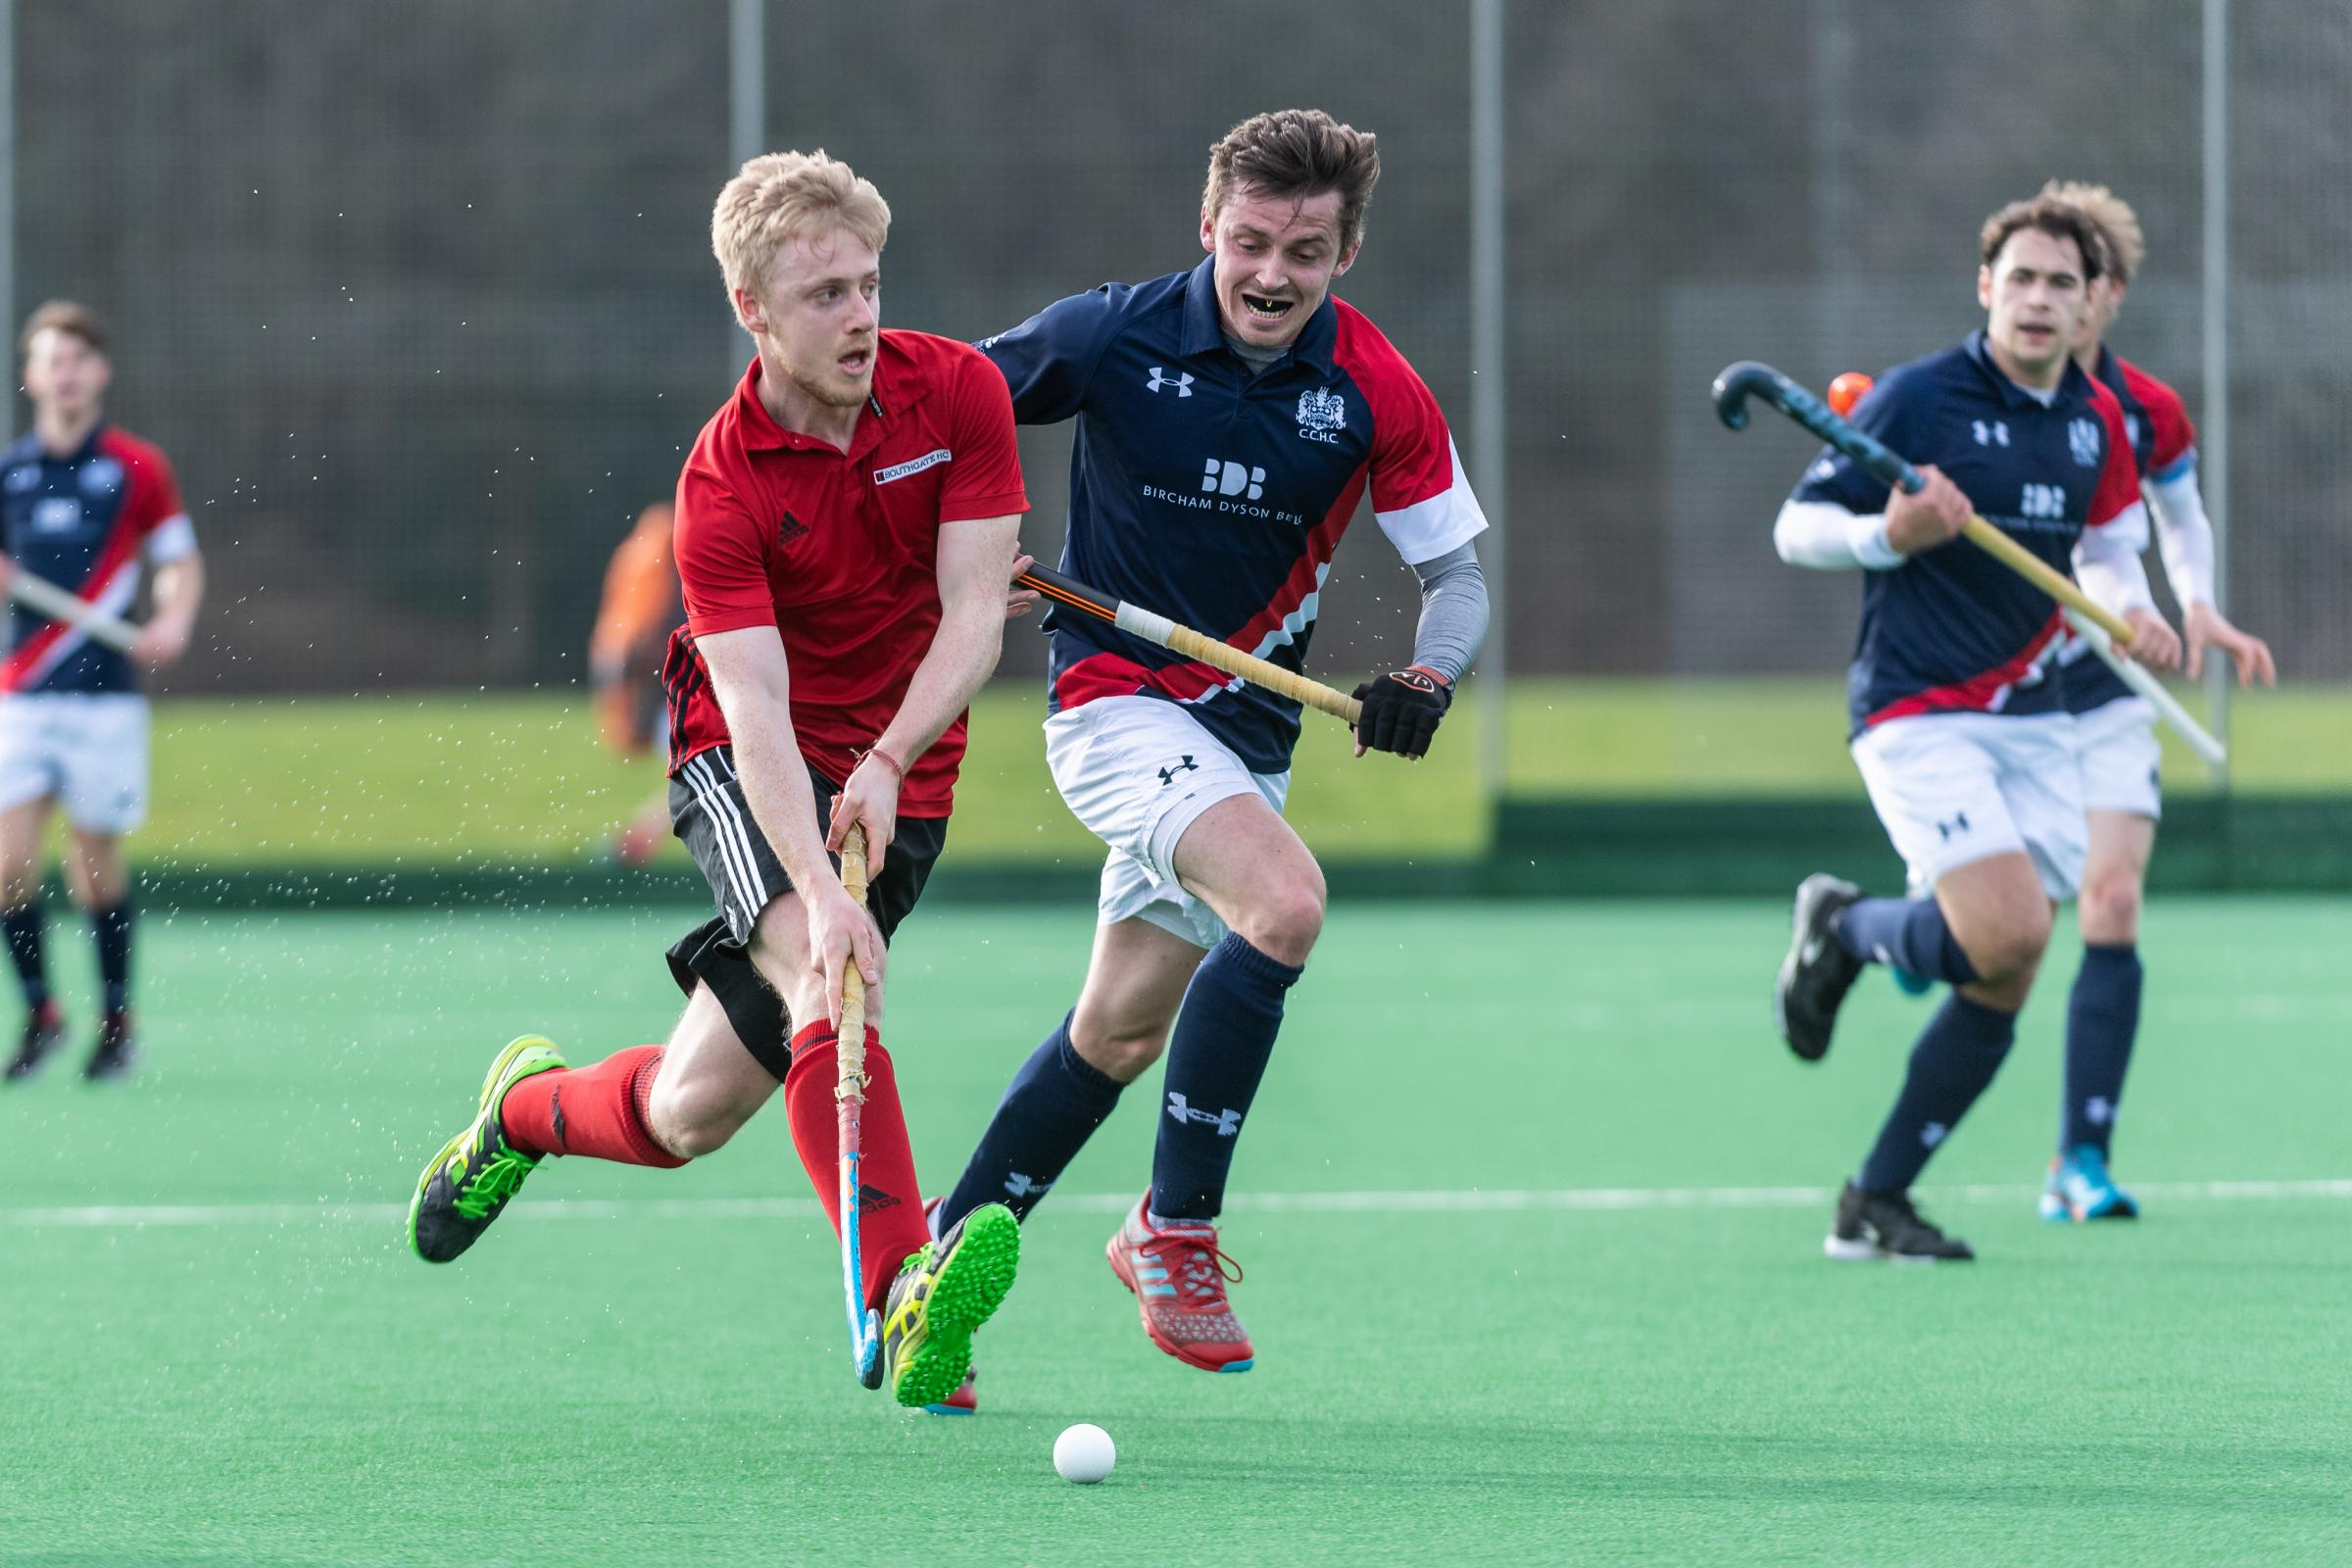 Southgate's Matt Allister on the ball. Southgate v Cambridge City - Men's Hockey League East Conference, Trent Park, London, UK on 02 March 2019. Picture: Simon Parker